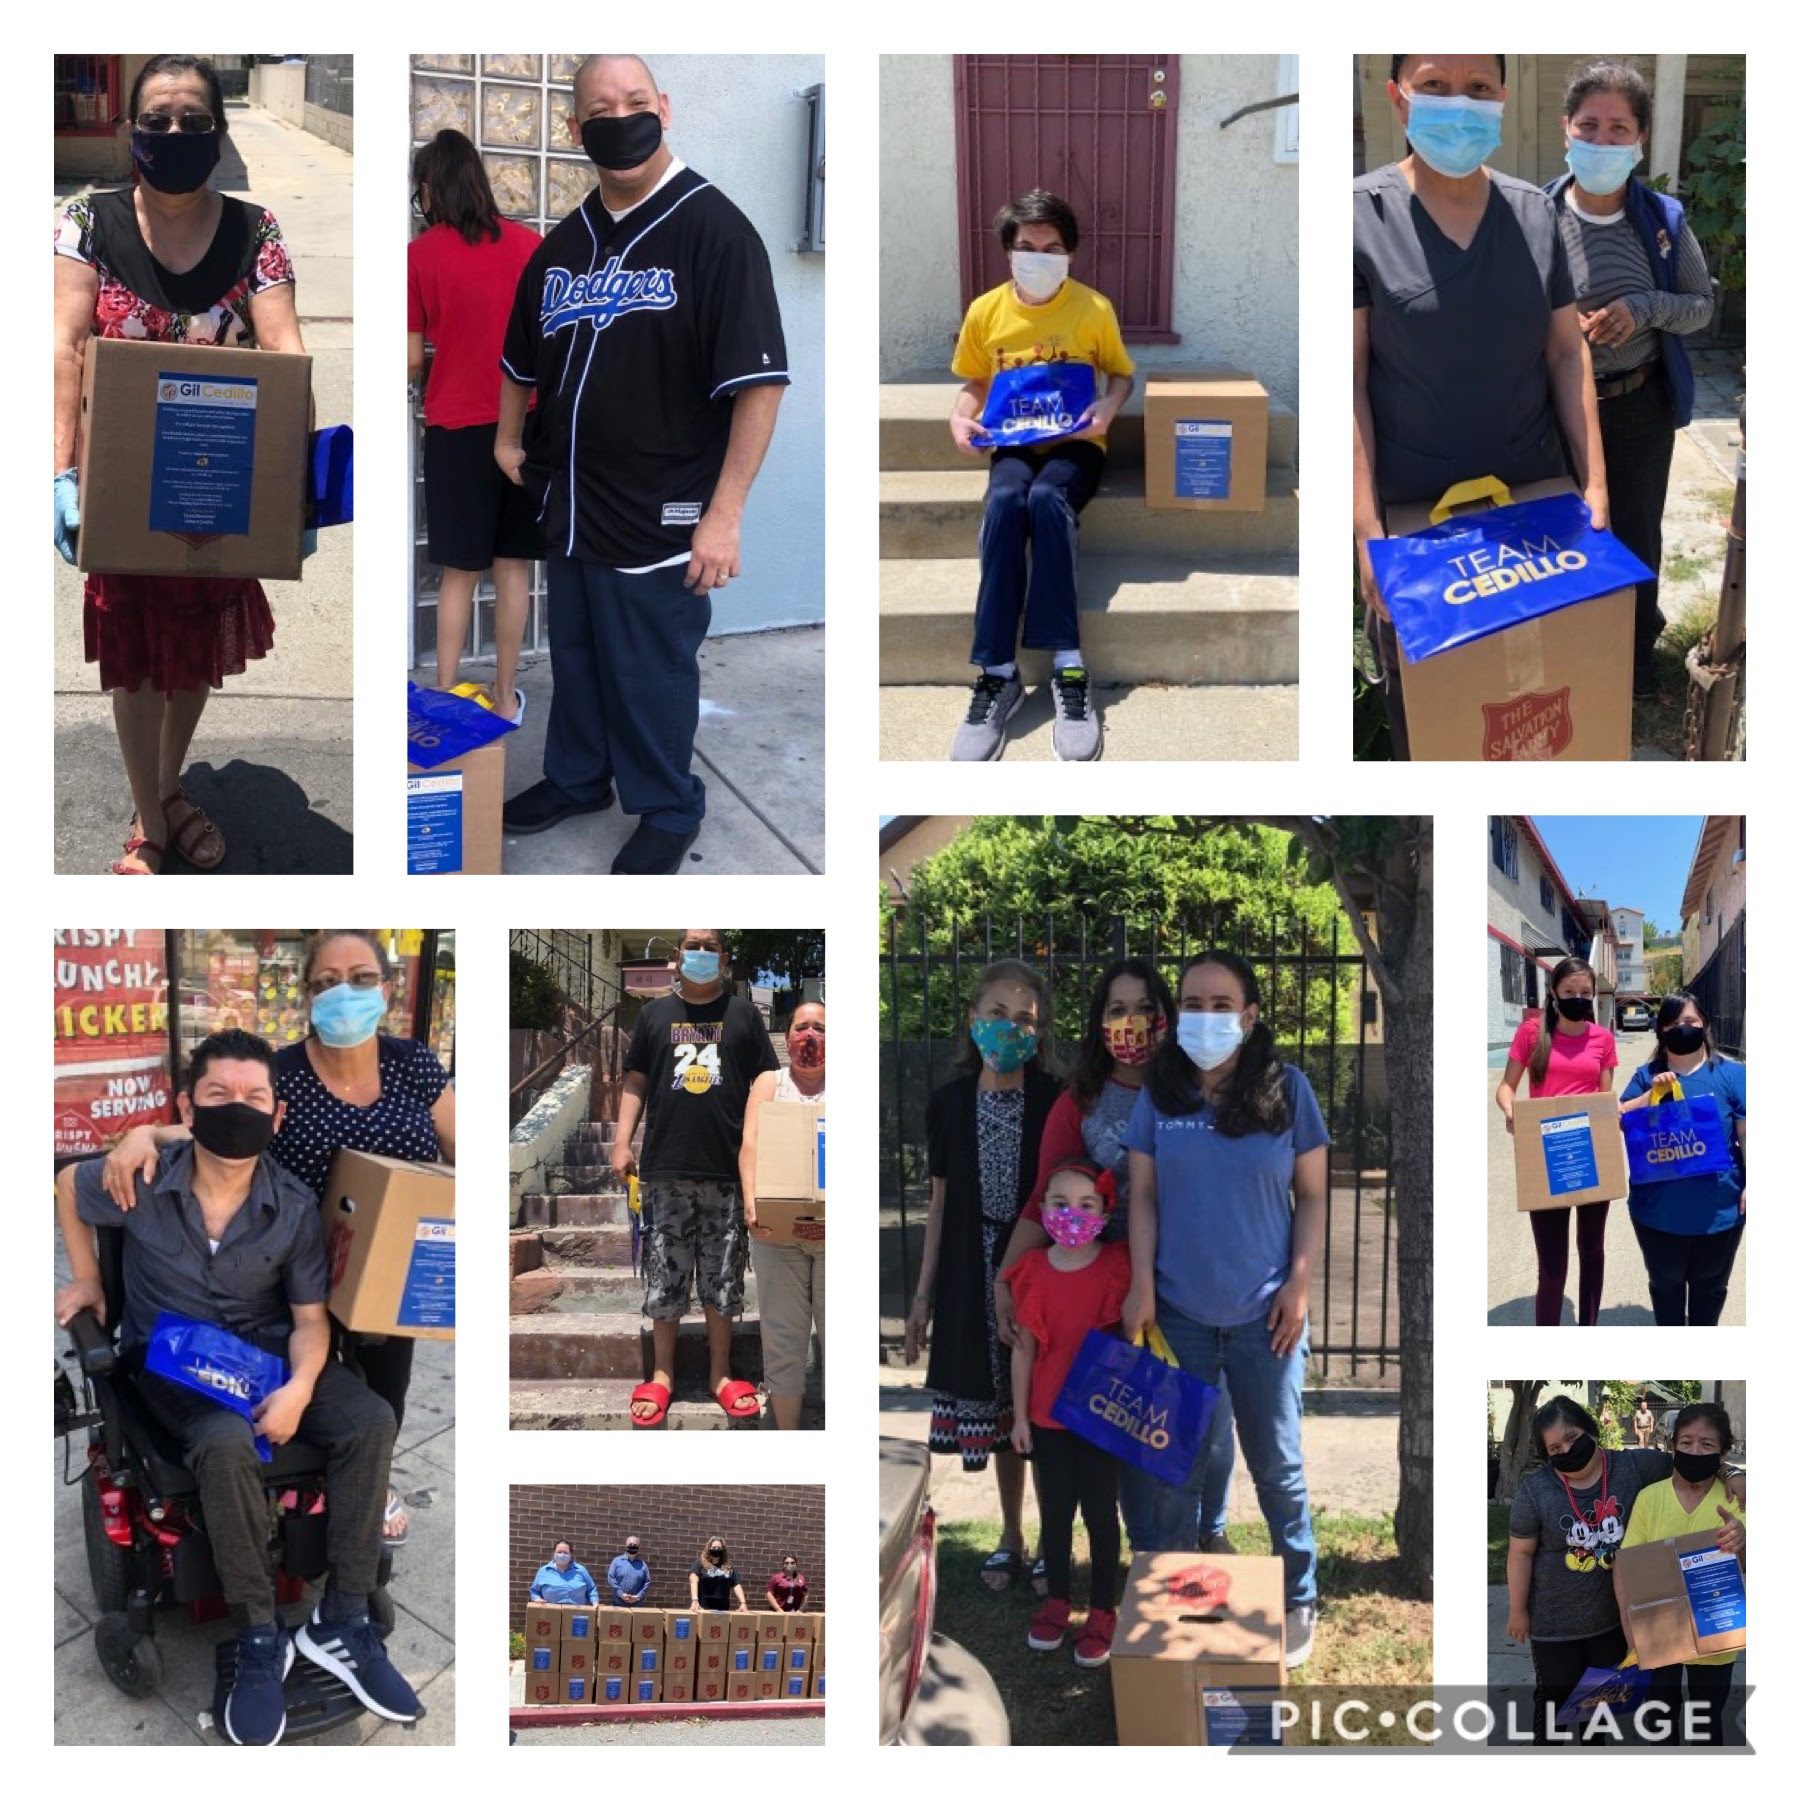 Team Cedillo, Salvation Army, and LA Dodgers deliver 45 food boxes to families of EL ARCA caring for aloved one with a developmental disability 5-29-2020 COLLAGE